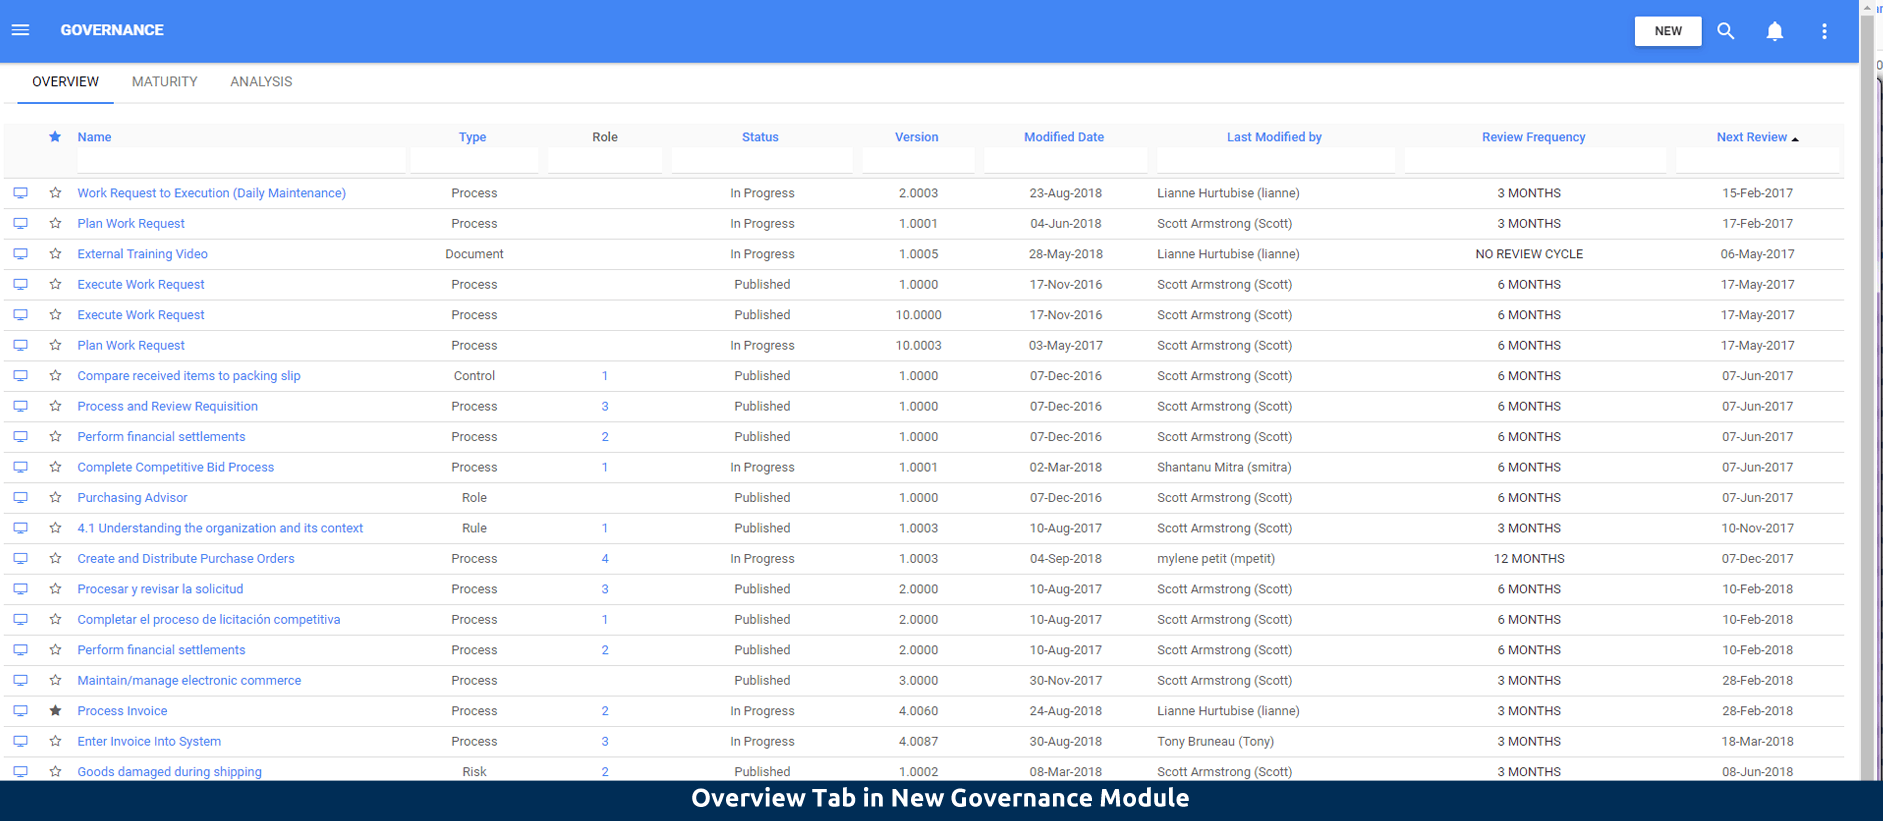 Overview Tab in New Governance Module